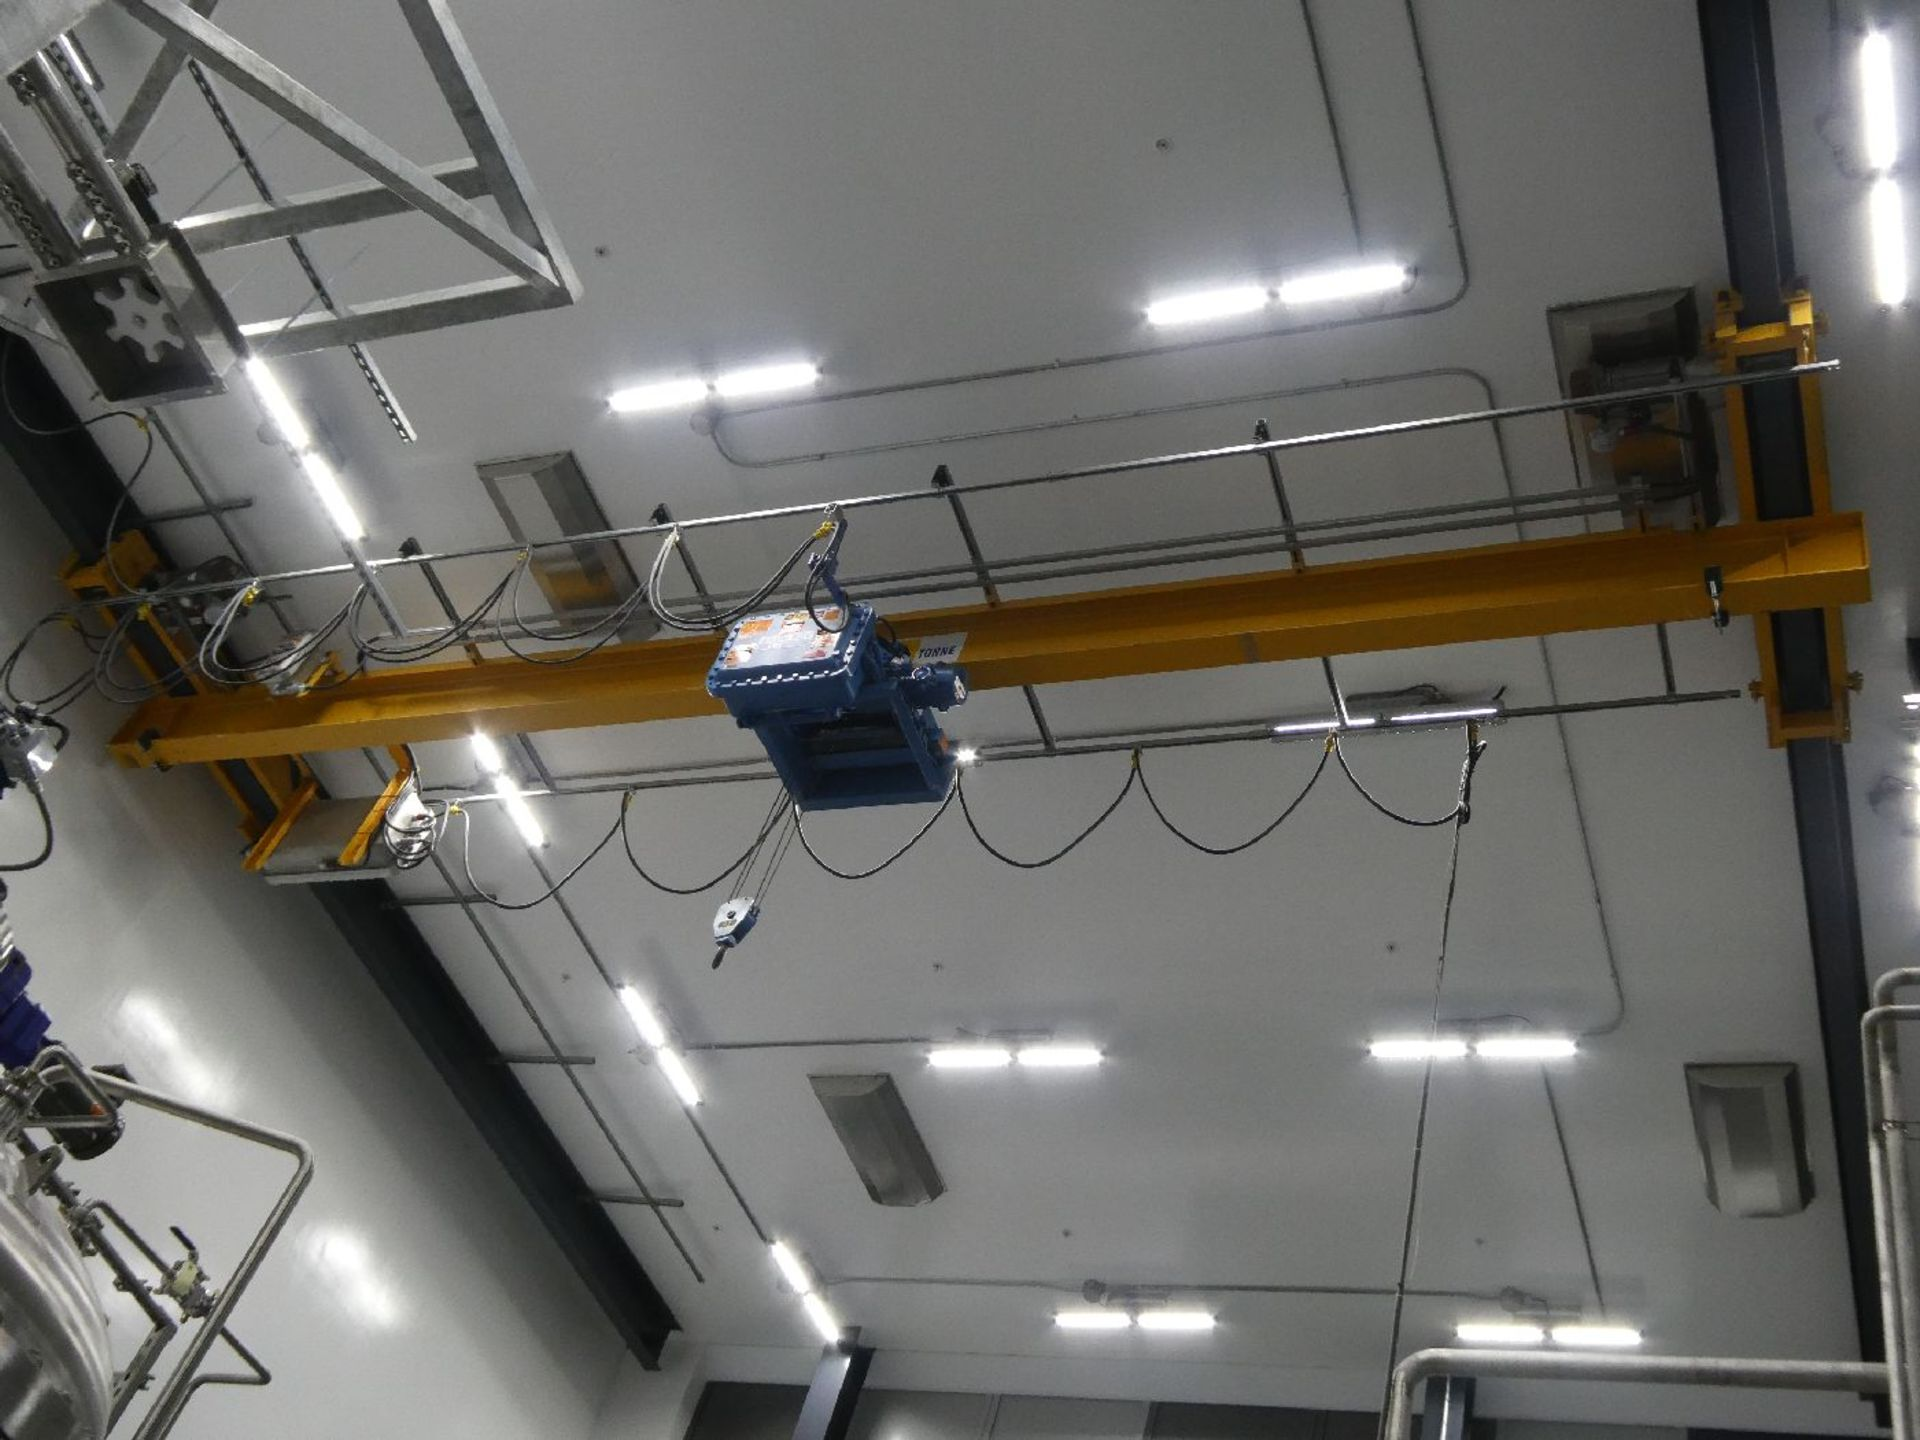 ROTAX Closed Loop Solvent Based Continuous Oil Extraction System - Image 47 of 68